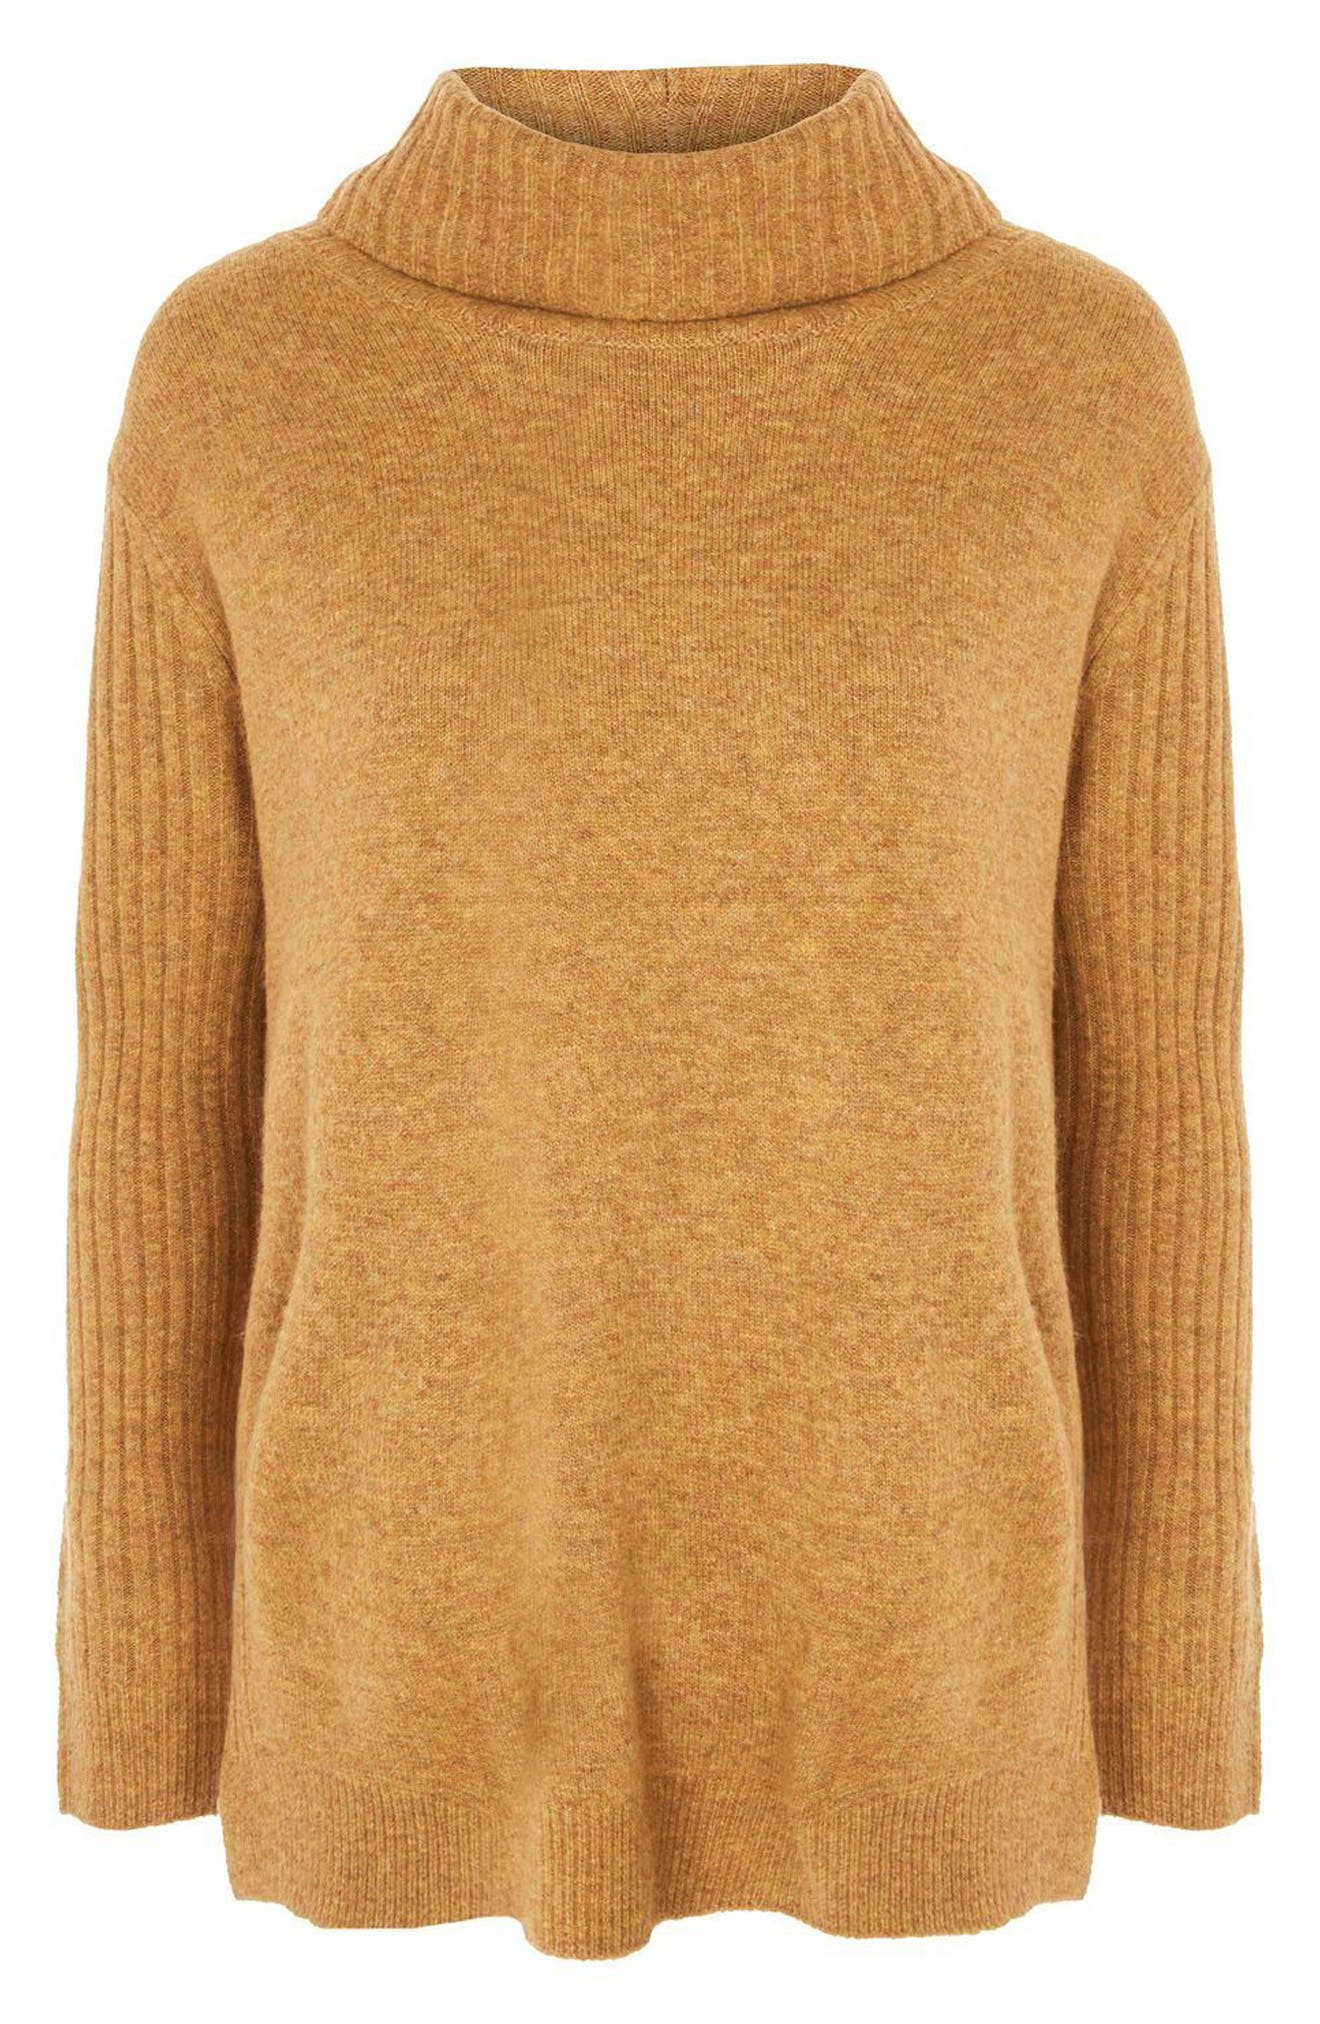 Oversize Turtleneck Sweater,                             Alternate thumbnail 3, color,